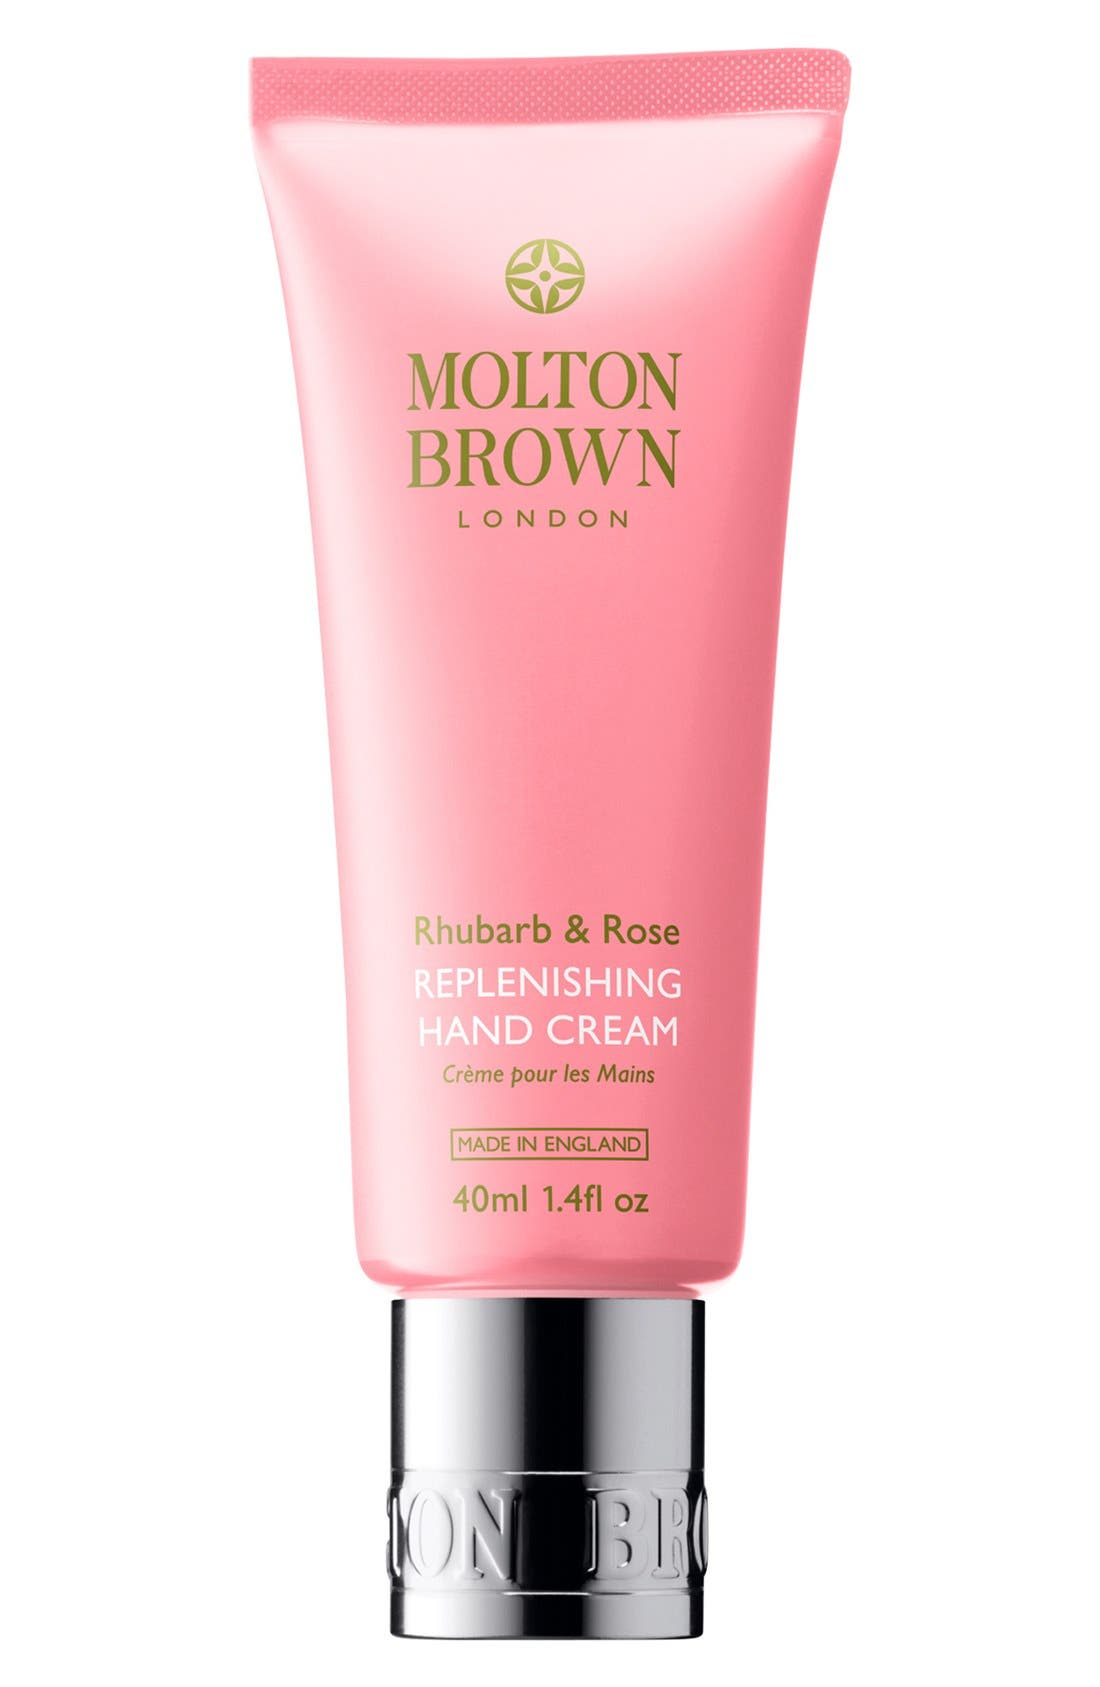 MOLTON BROWN London 'Rhubarb & Rose' Replenishing Hand Cream